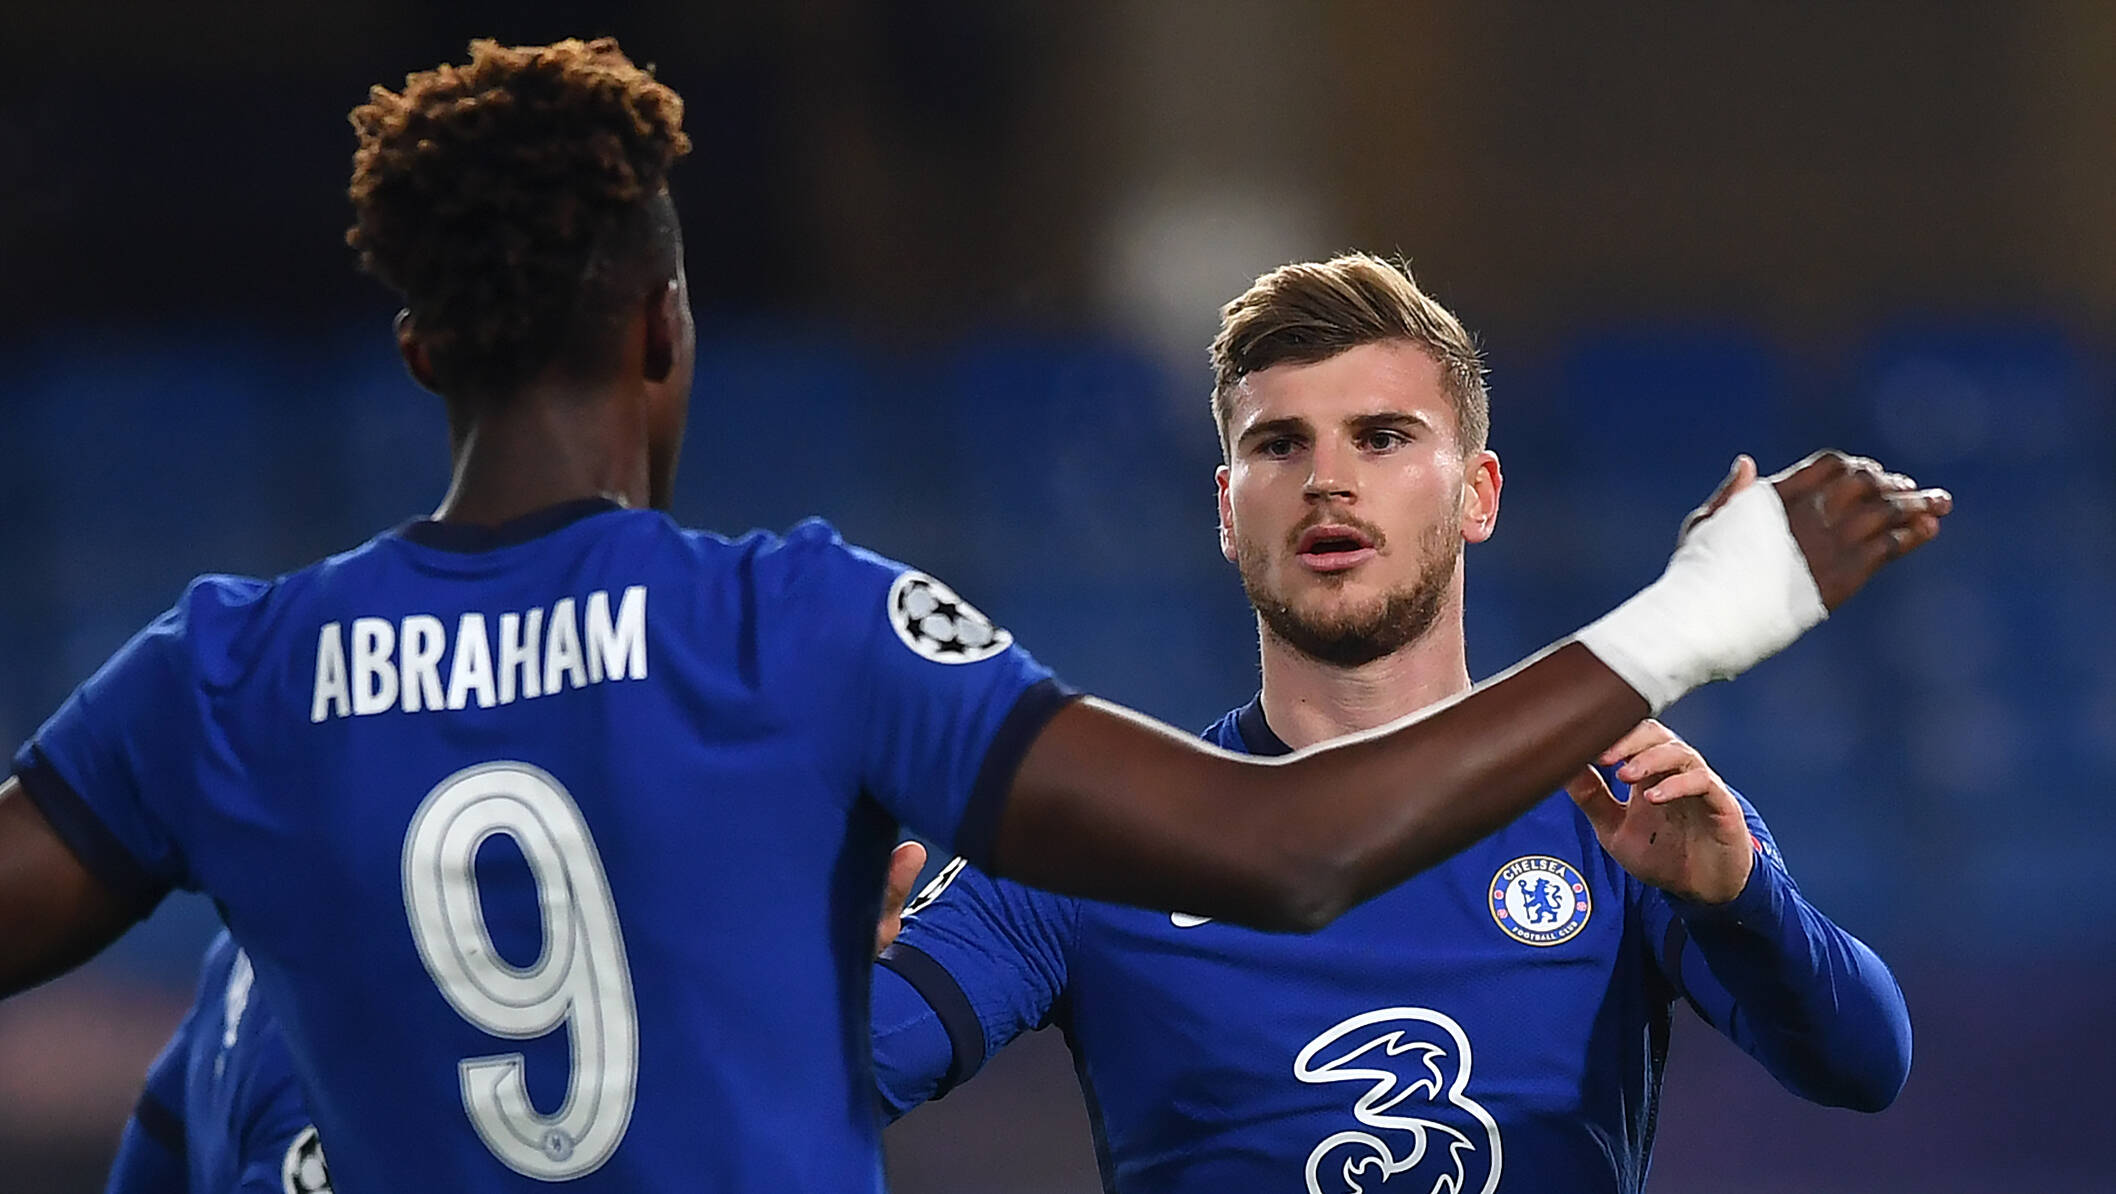 Tammy Abraham and Timo Werner in action for Chelsea last season.